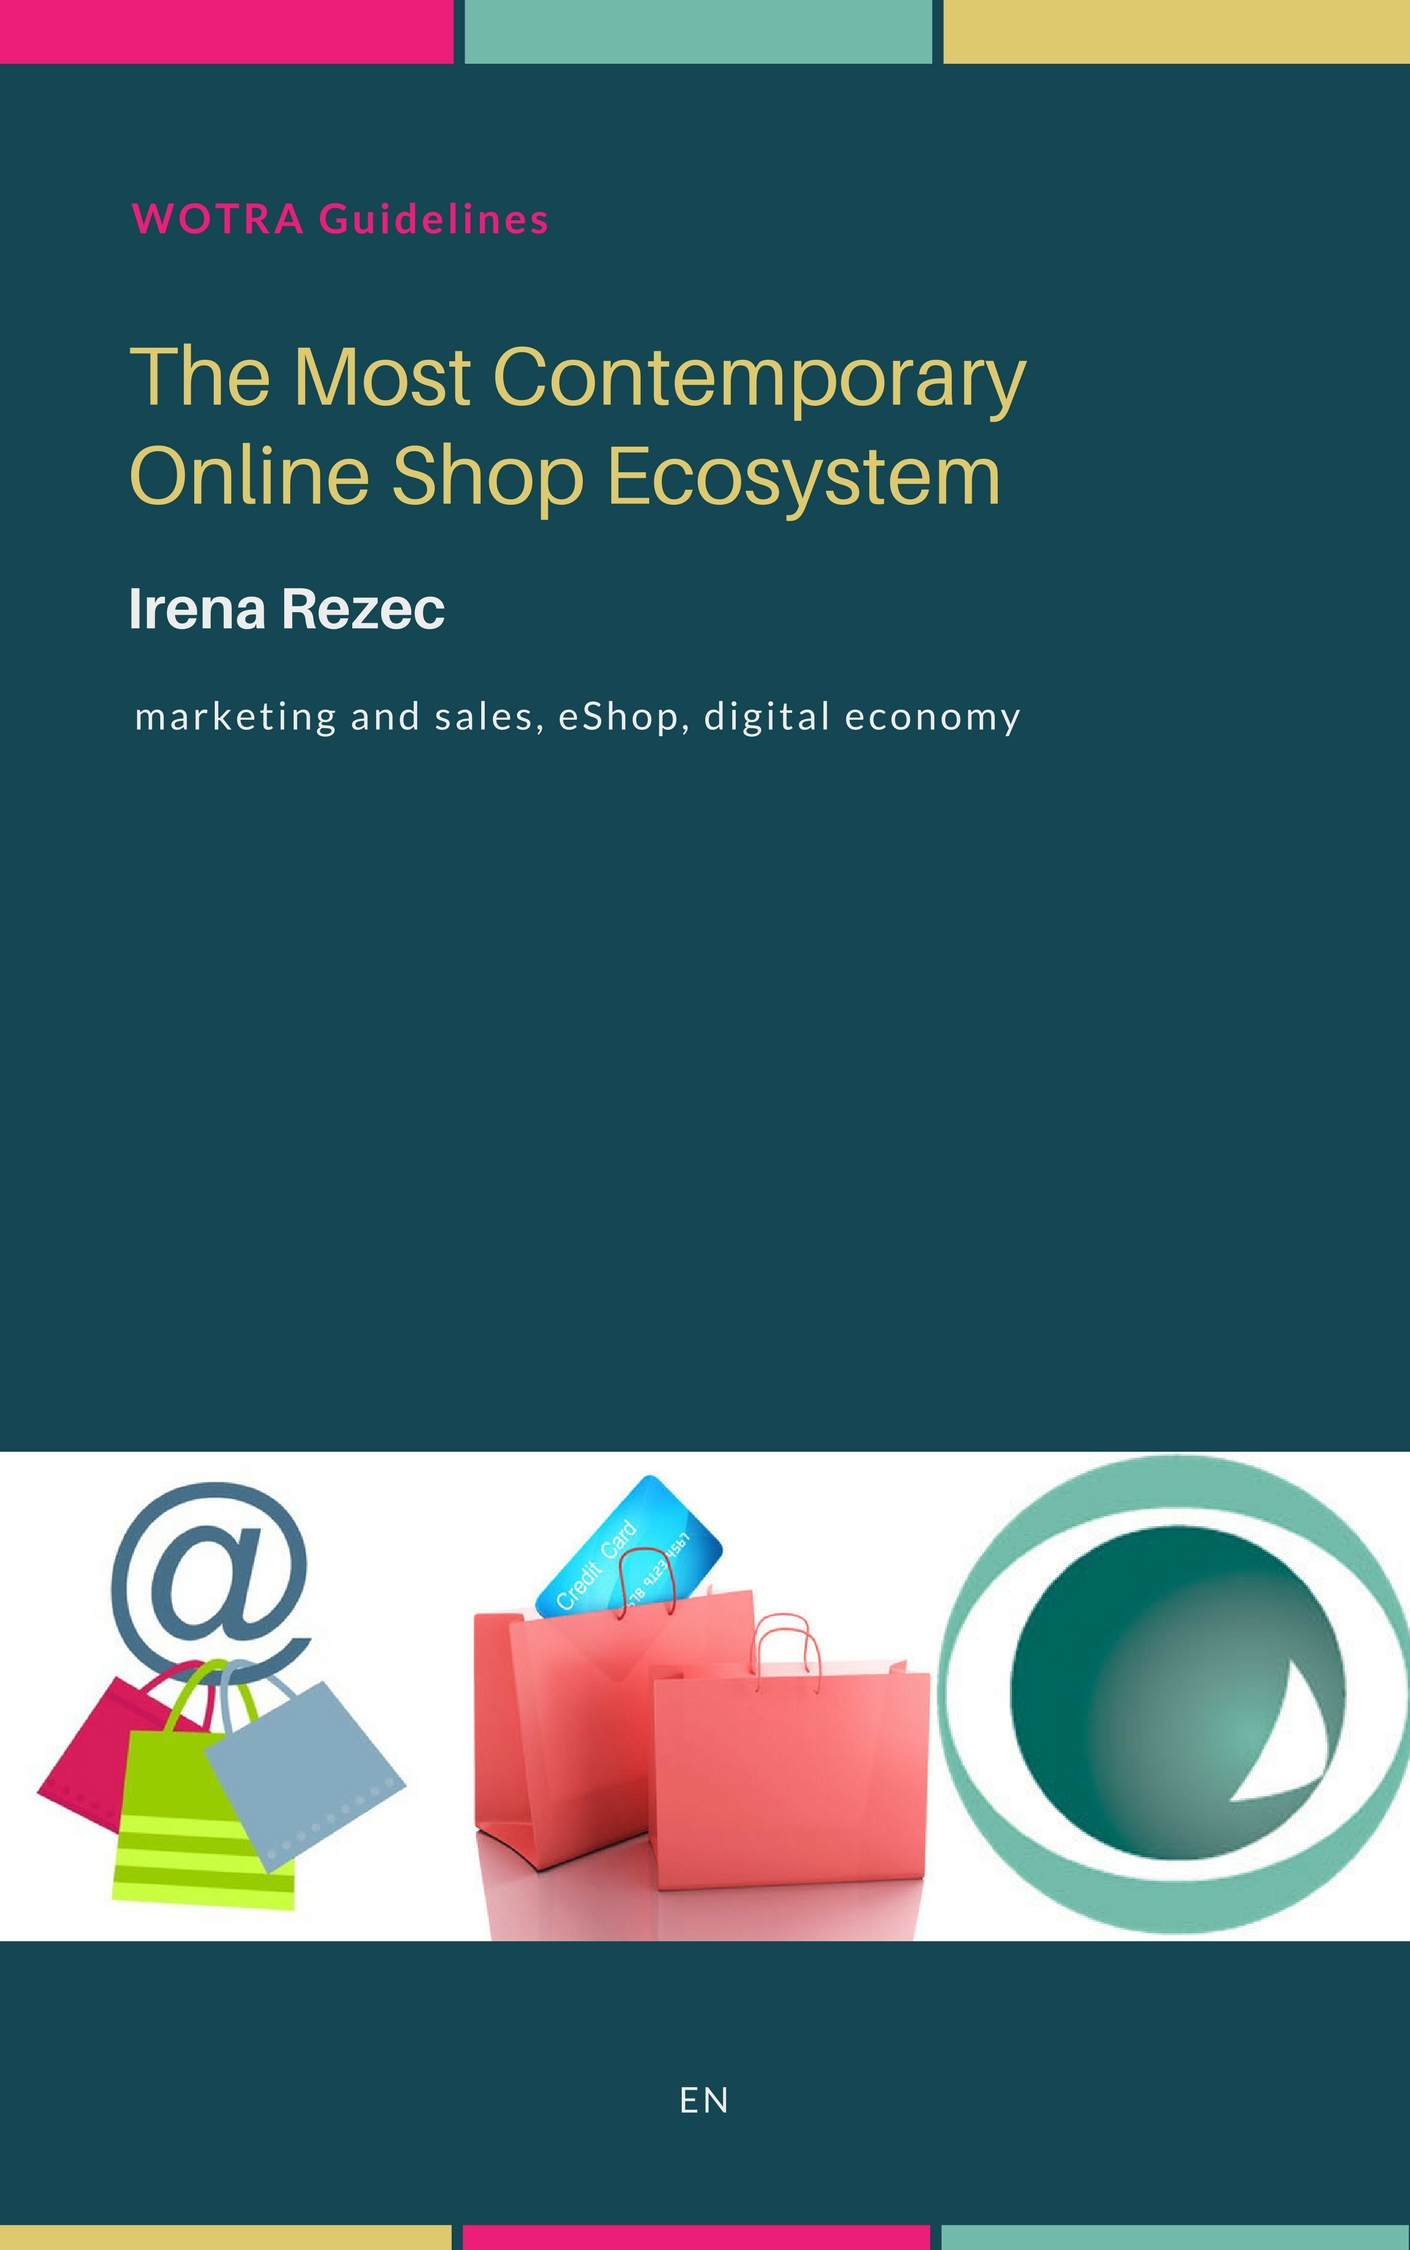 The Most Contemporary Online Shop Ecosystem